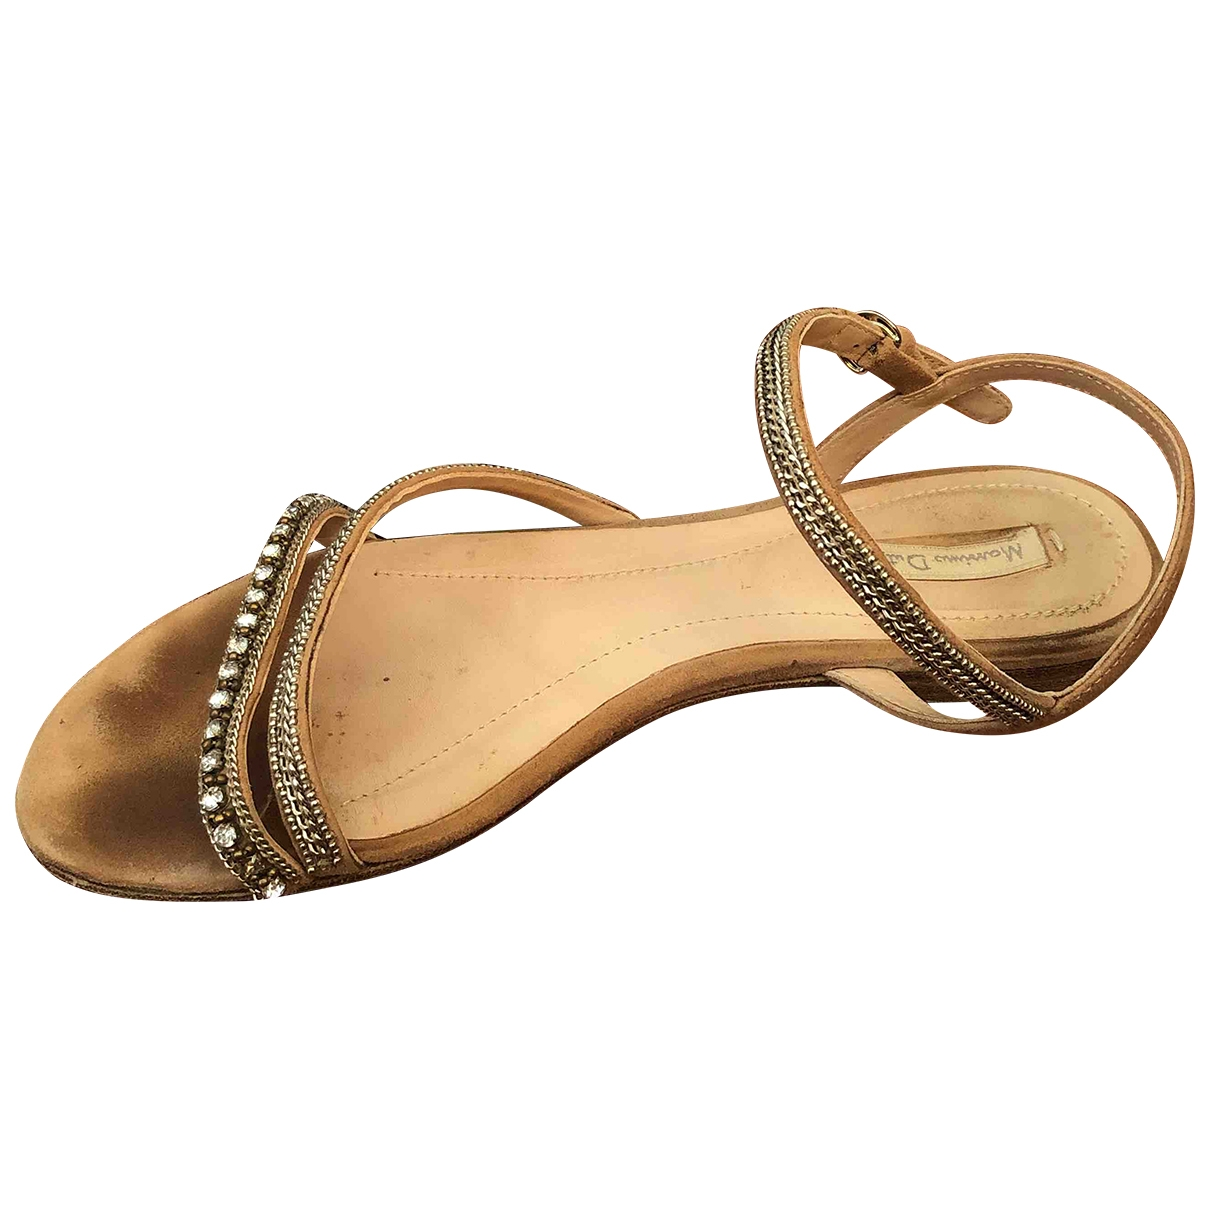 Massimo Dutti \N Beige Suede Sandals for Women 39 EU